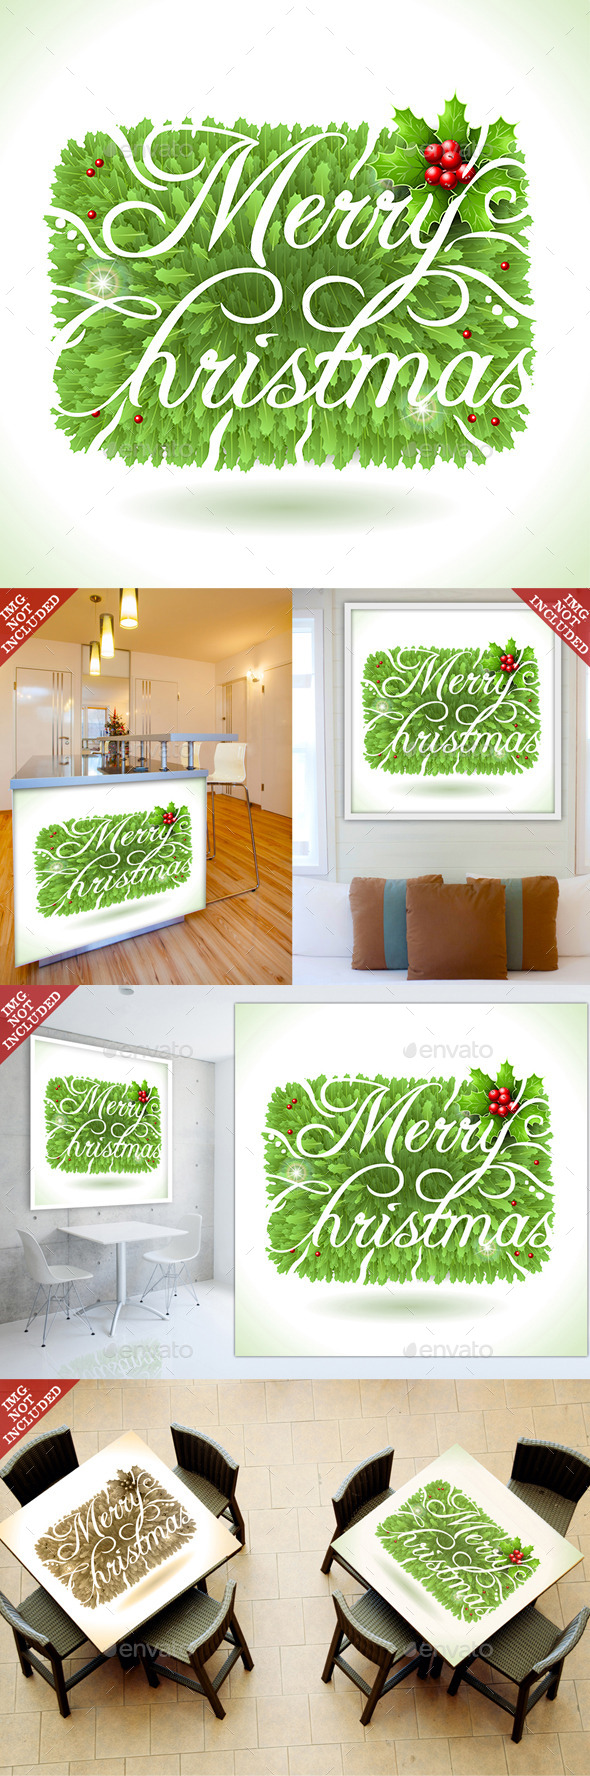 Holly Leaves and Merry Christmas Calligraphic Text - Christmas Seasons/Holidays